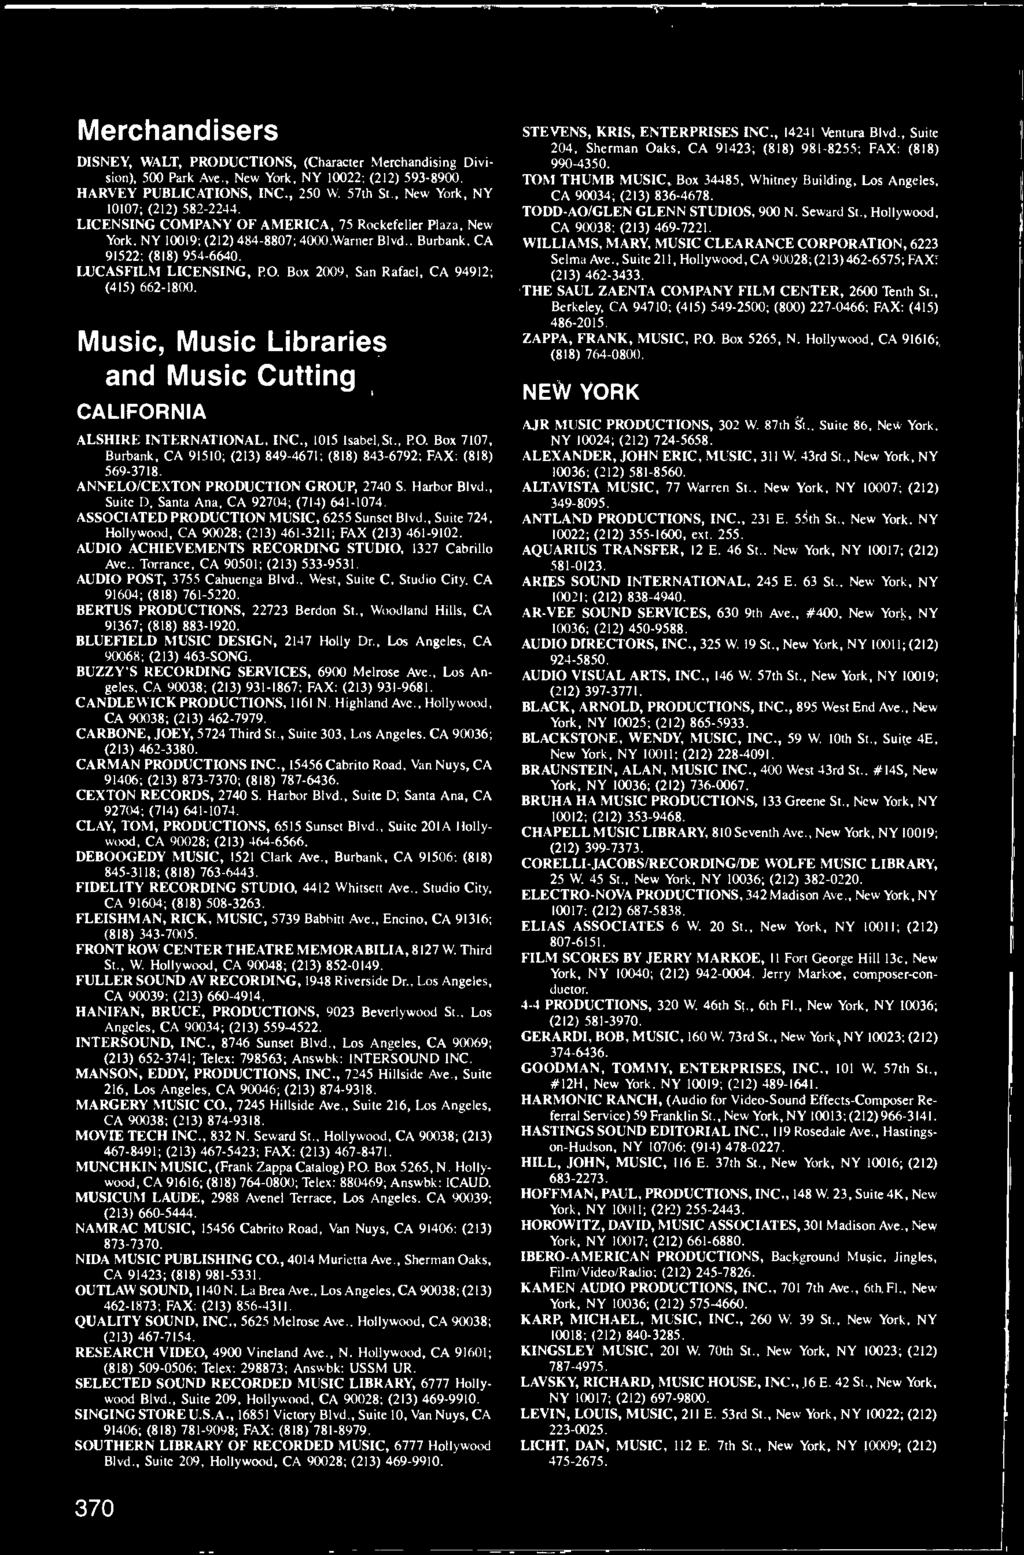 LUCASFILM LICENSING, P.O. Box 2009, San Rafael, CA 94912; (415) 662-1800. Music, Music Libraries and Music Cutting CALIFORNIA ALSHIRE INTERNATIONAL, INC., 1015 Isabel St., P.O. Box 7107, Burbank, CA 91510; (213) 849-4671; (818) 843-6792; FAX: (818) 569-3718.